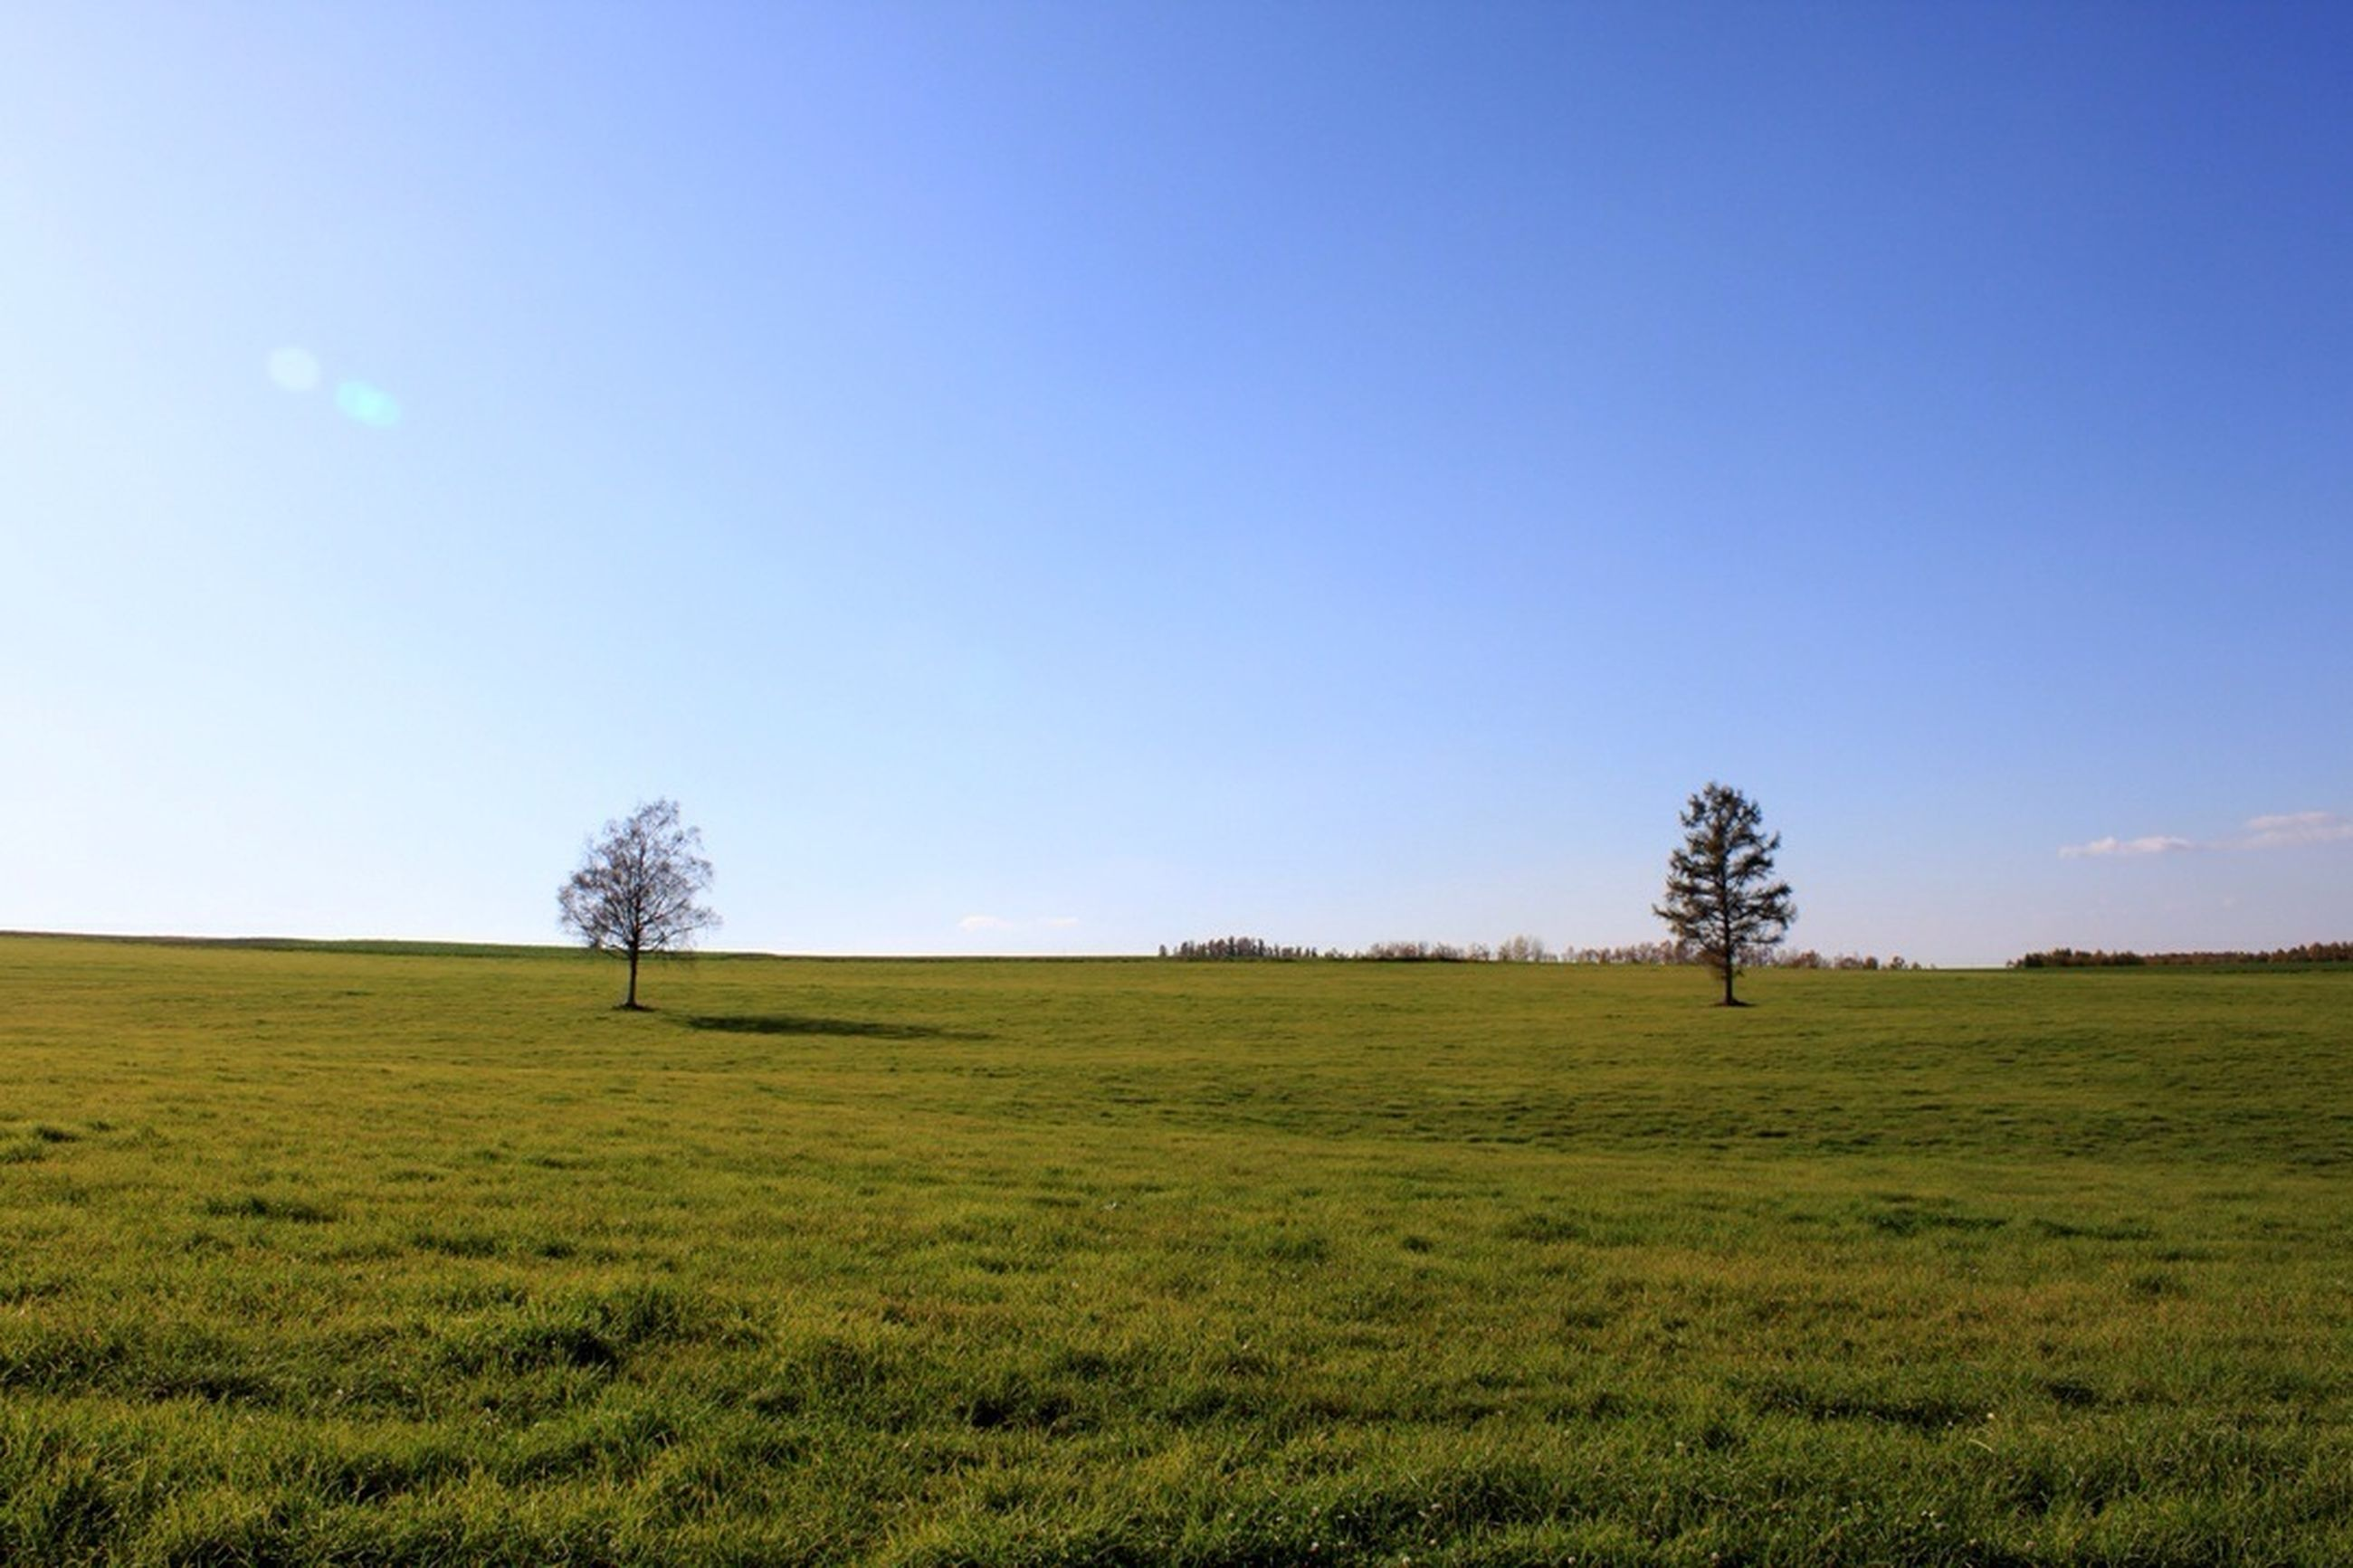 grass, tree, tranquility, clear sky, landscape, tranquil scene, field, blue, copy space, scenics, beauty in nature, nature, grassy, growth, sky, bare tree, horizon over land, green color, non-urban scene, idyllic